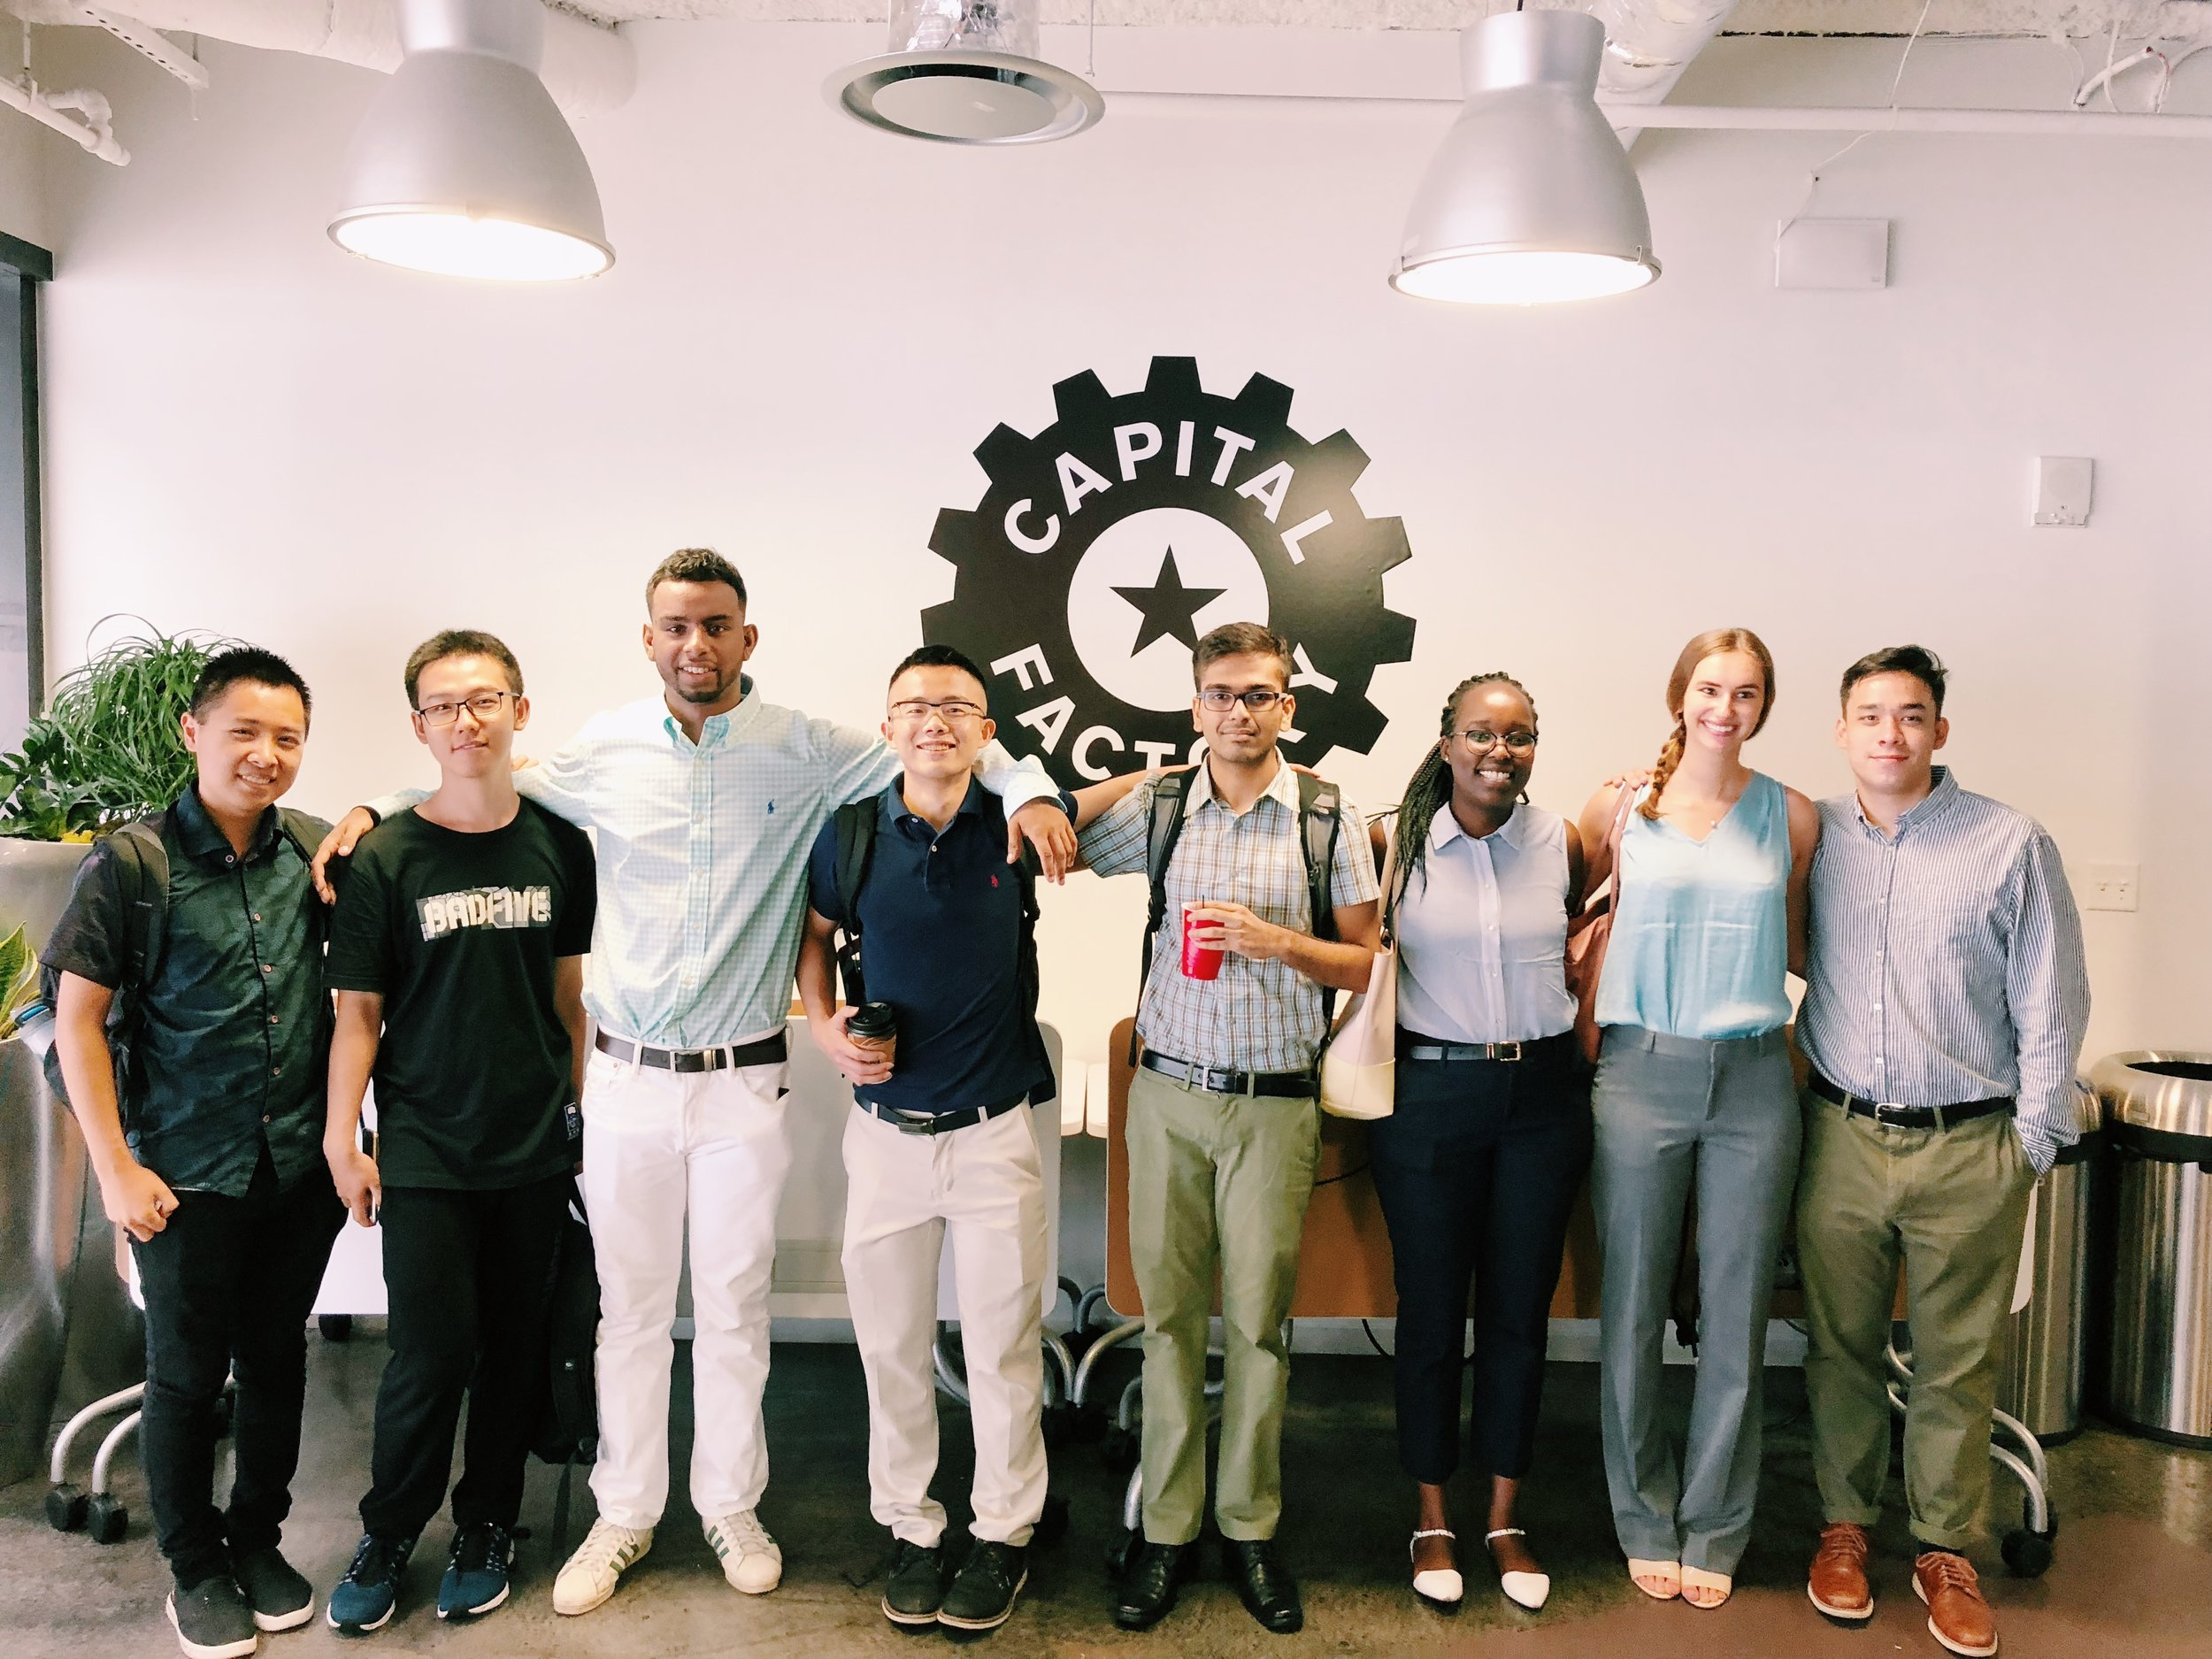 Vivian (third from right) and her fellow cohort mates, at Capital Factory during orientation.